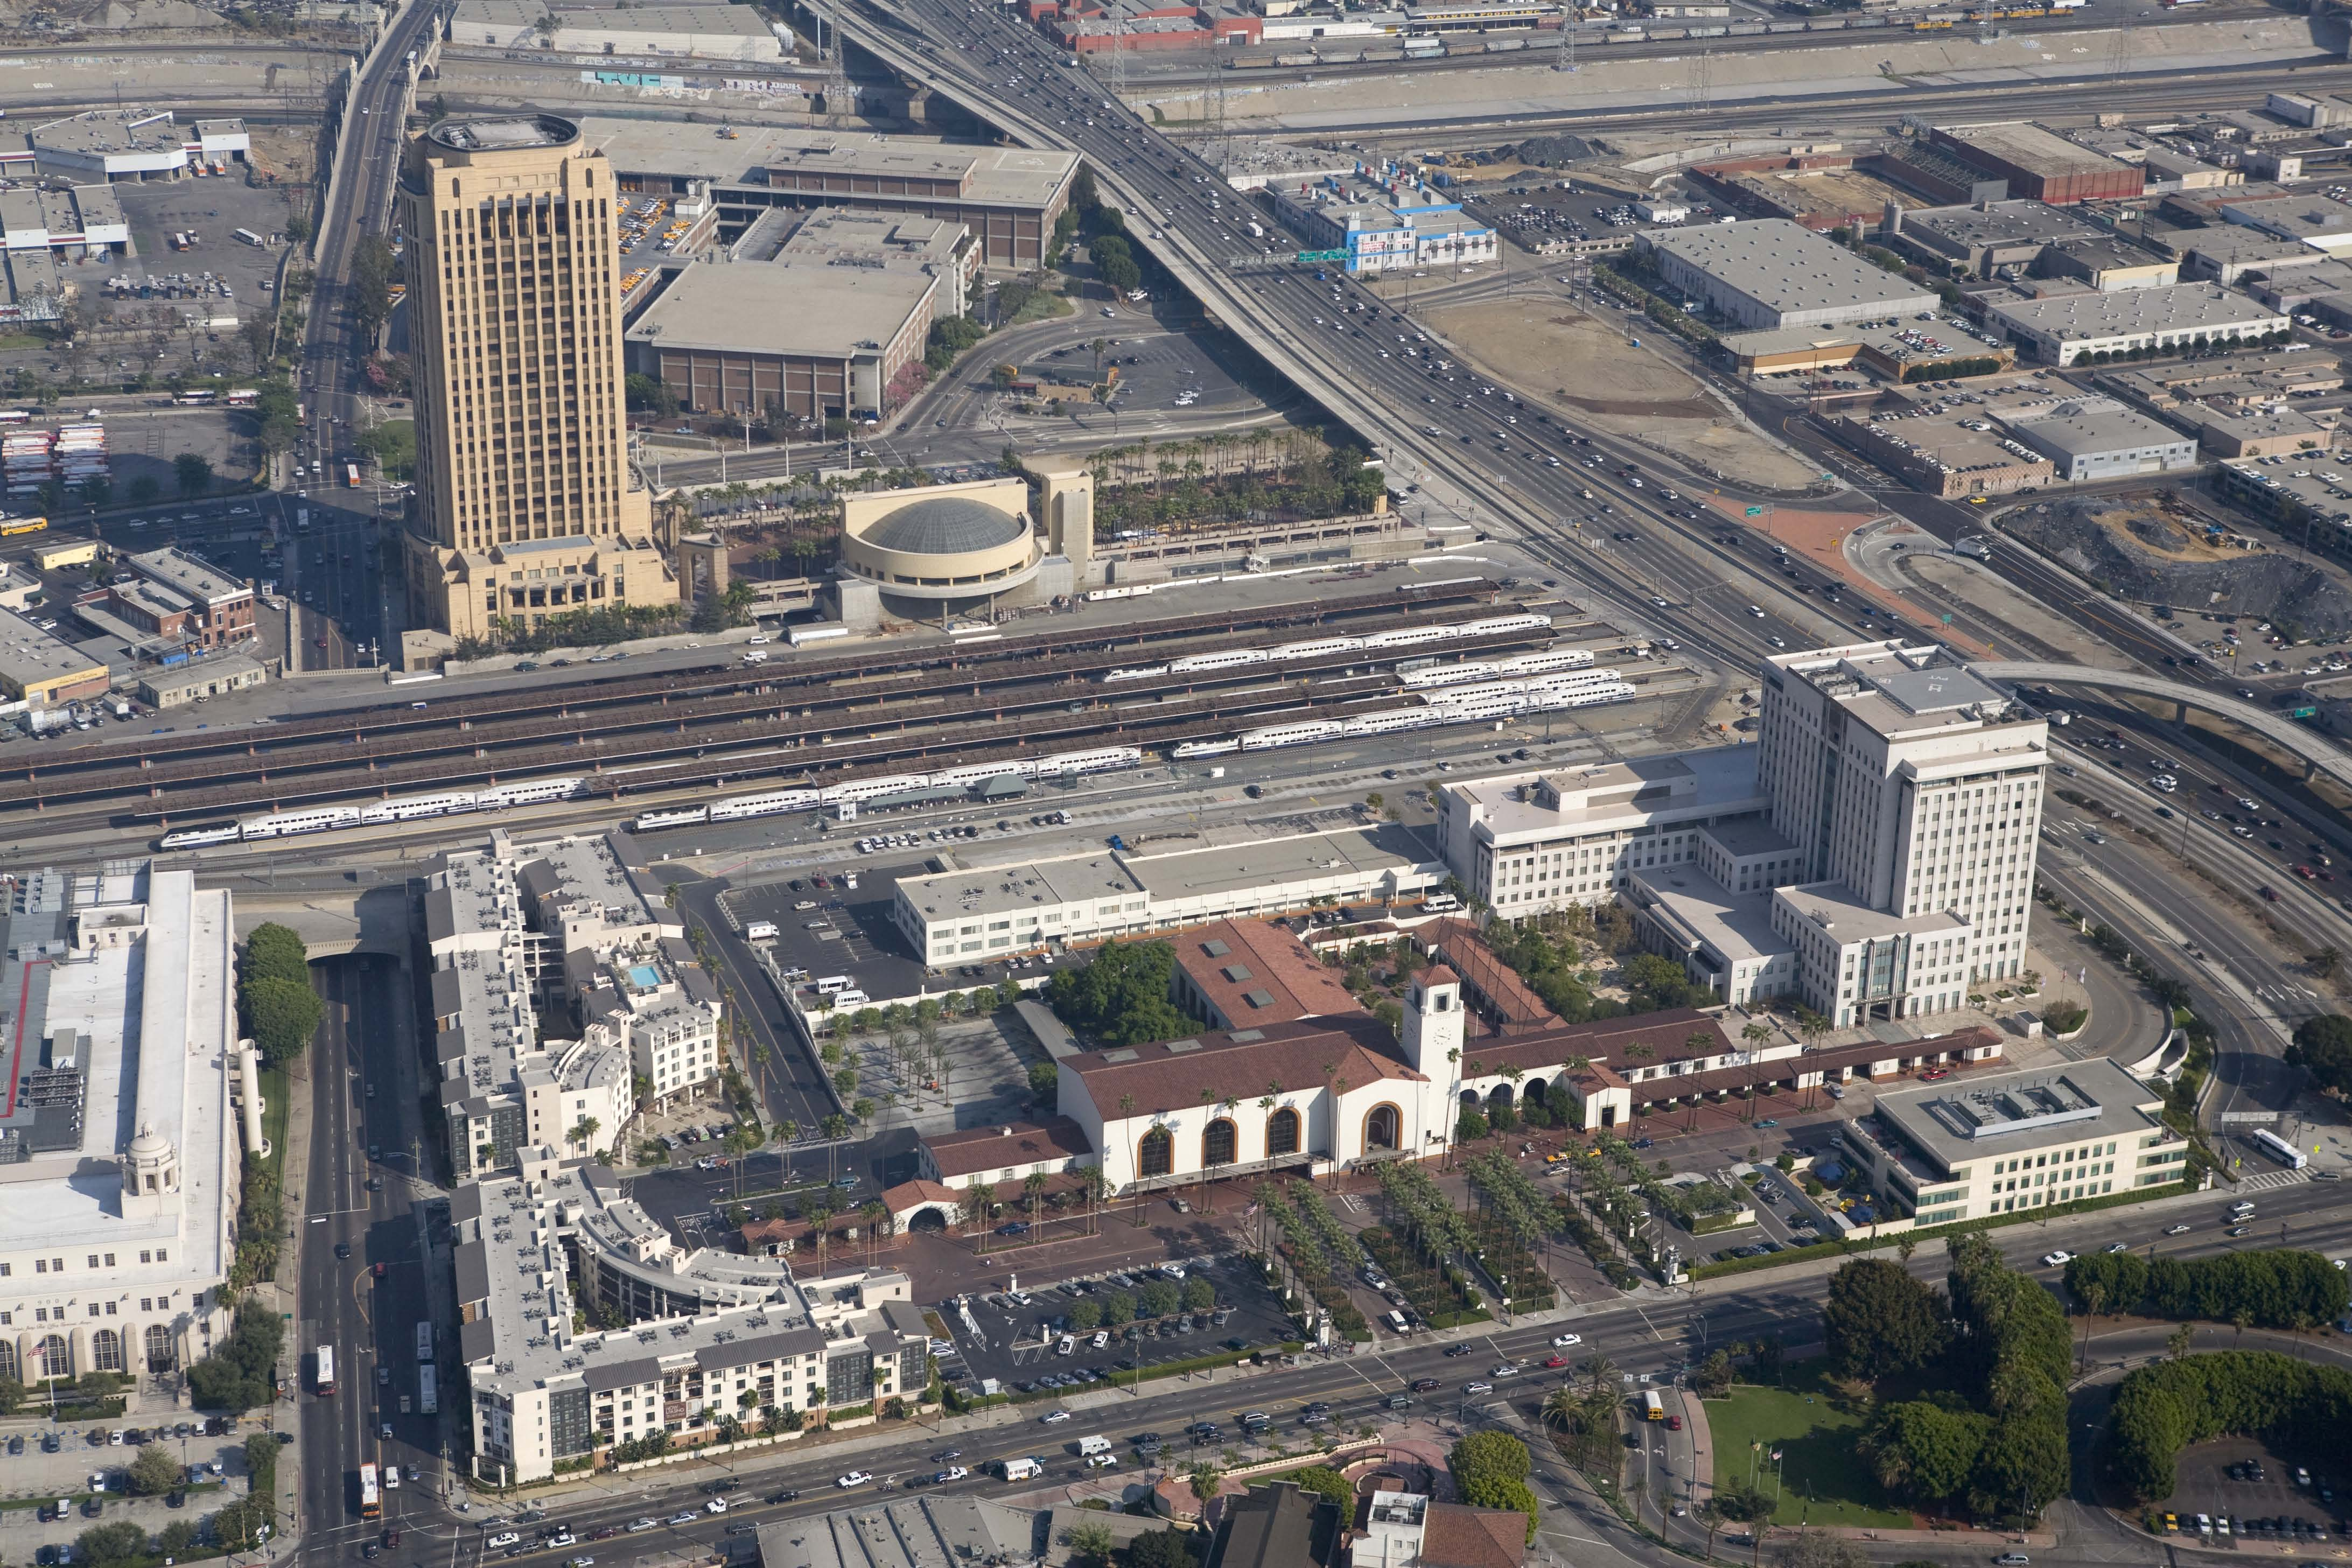 Los Angeles Union Station 04